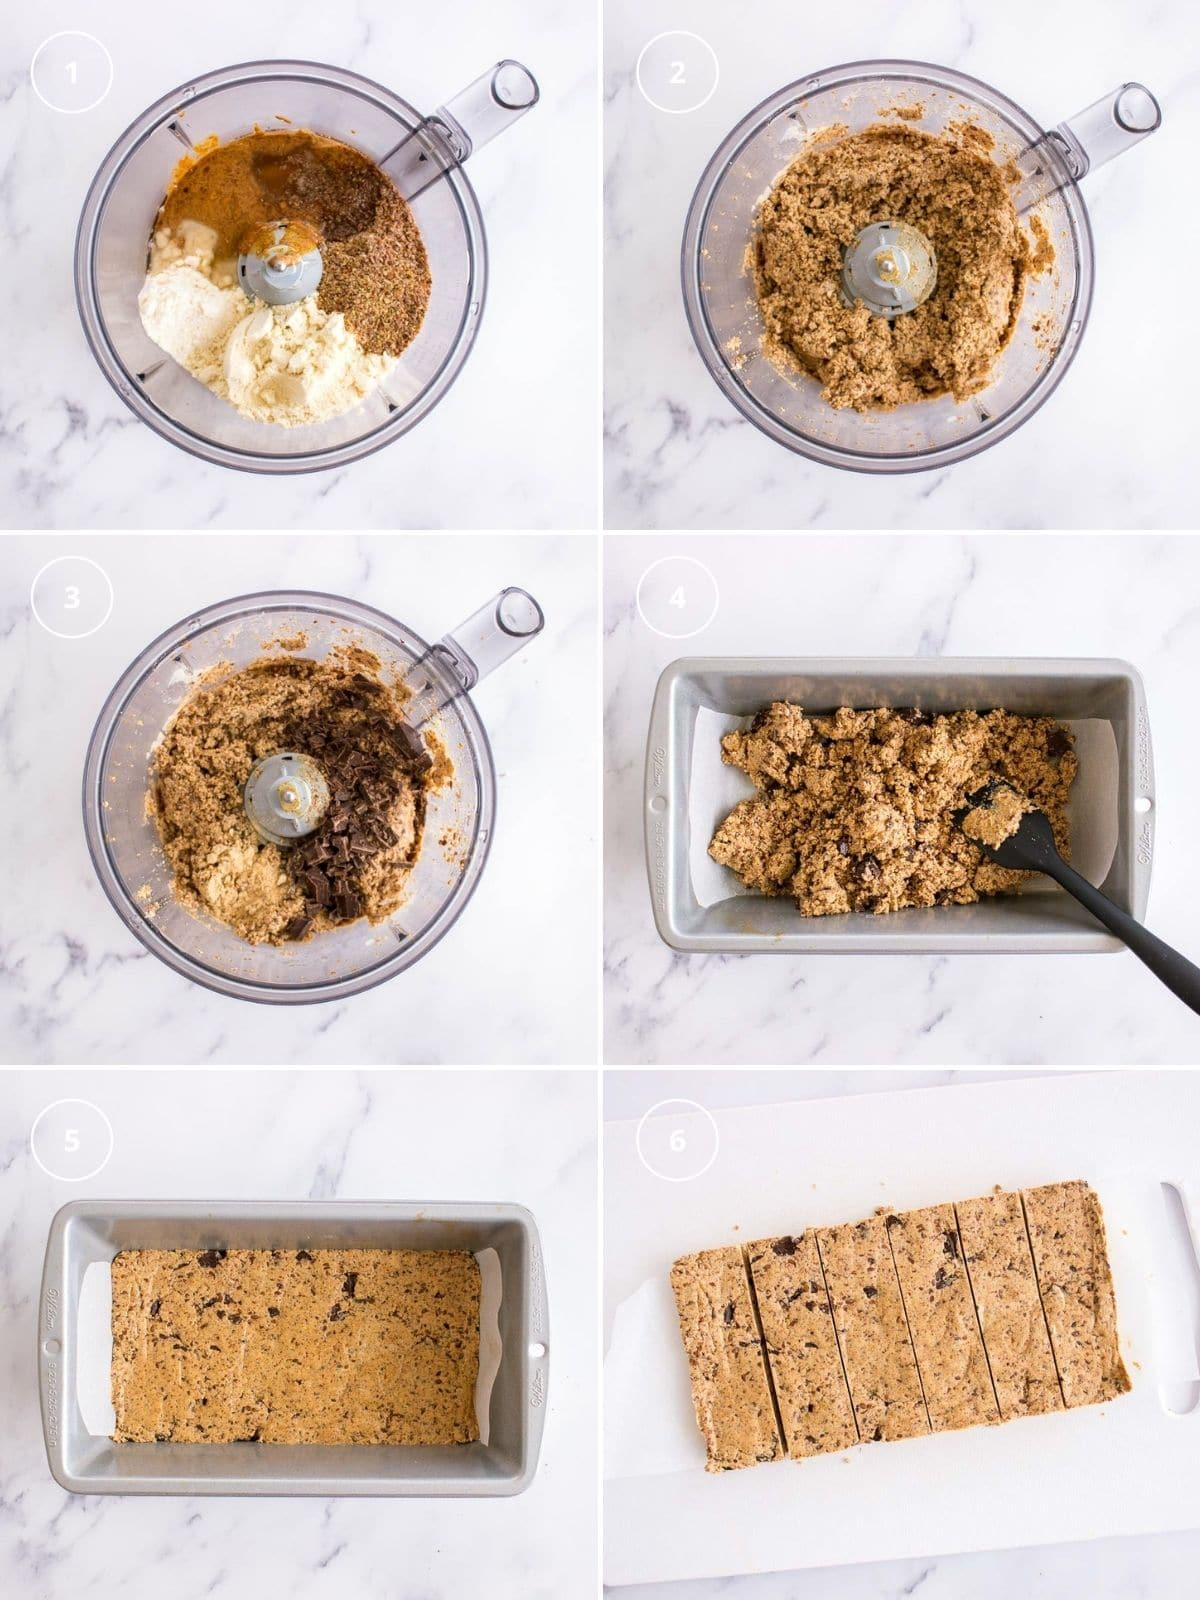 How to make Cookie Dough Protein Bars